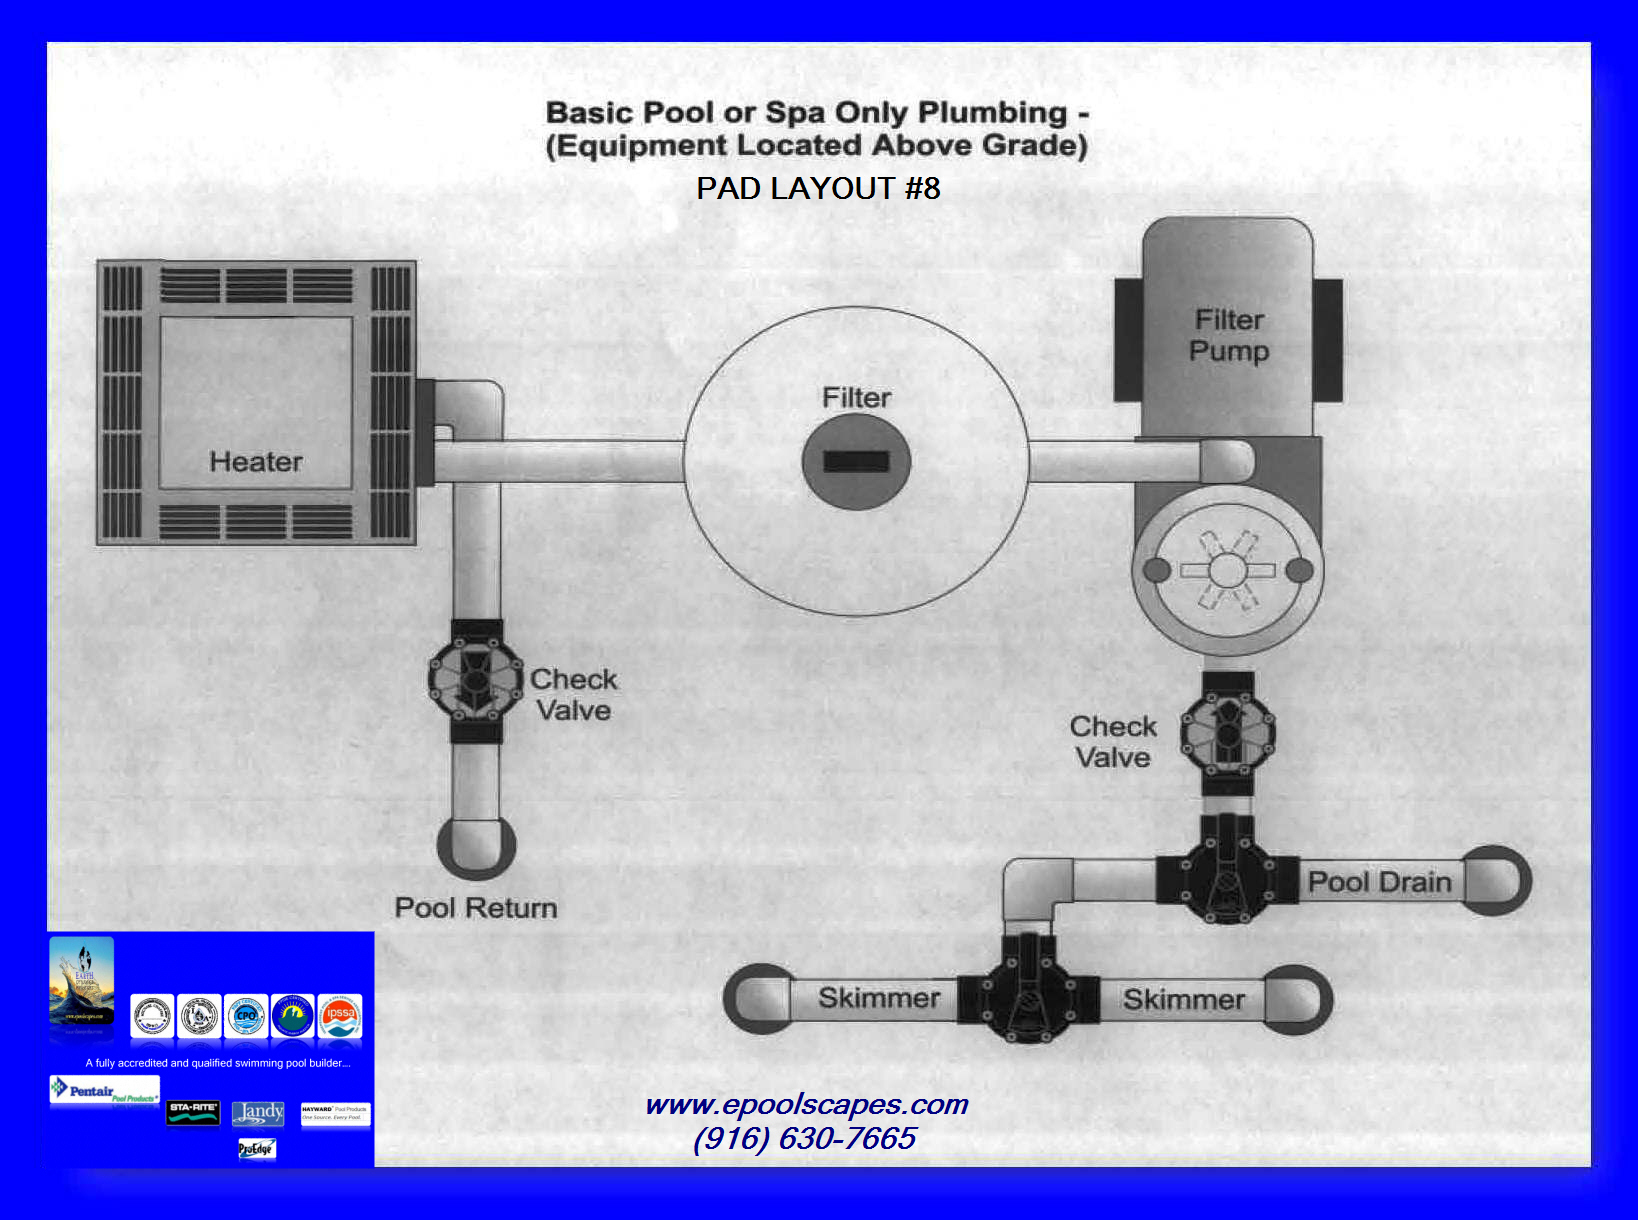 Swimming Pool Equipment Pad Layouts Jandy Control Wiring Diagram Click Image To Enlarge